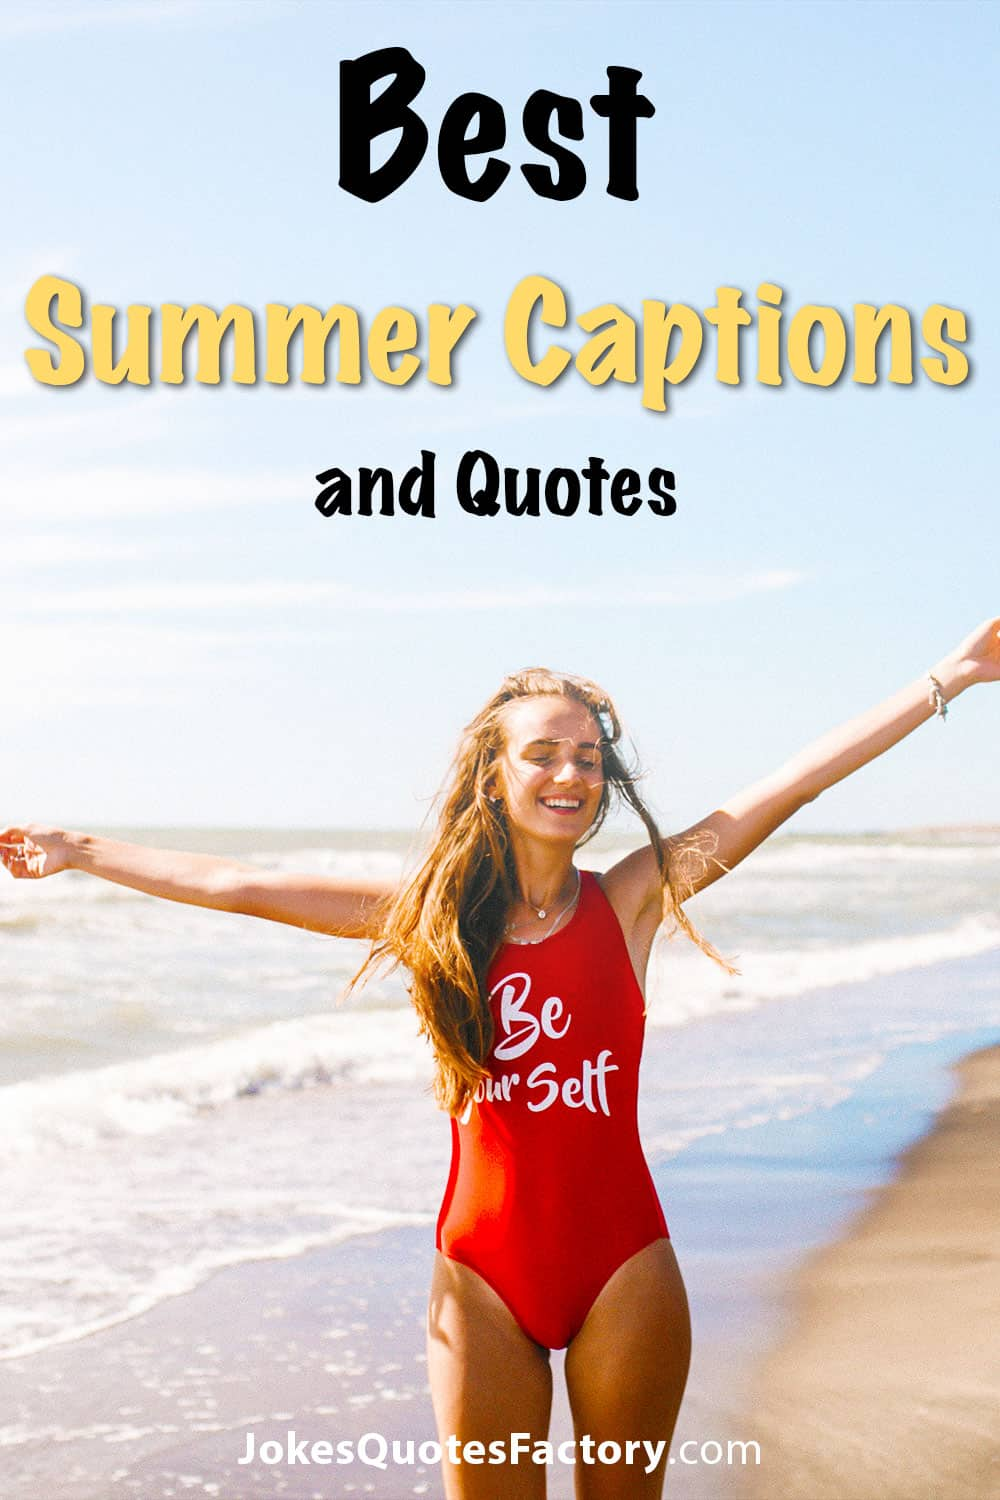 Best Summer Captions and Quotes (for Family and Friends)